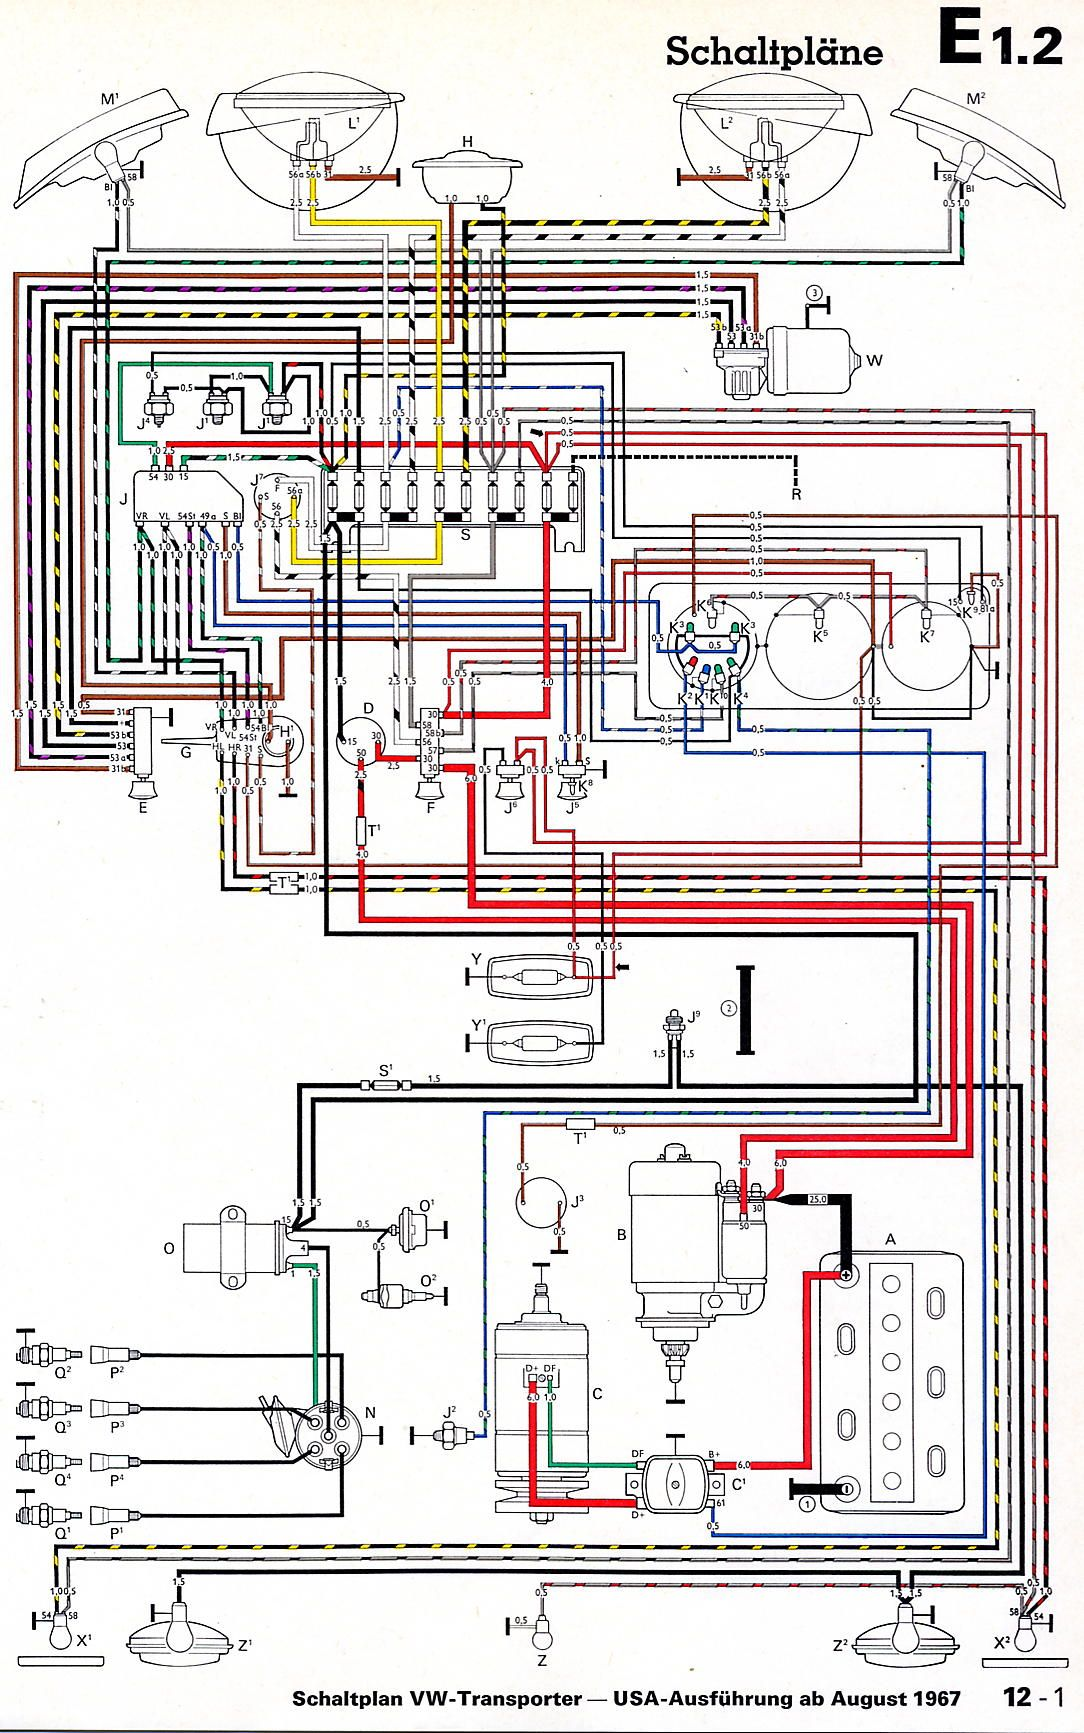 hight resolution of vw bus fuse diagram wiring diagram forwardvw vanagon fuse diagram wiring diagrams mon 1979 vw bus